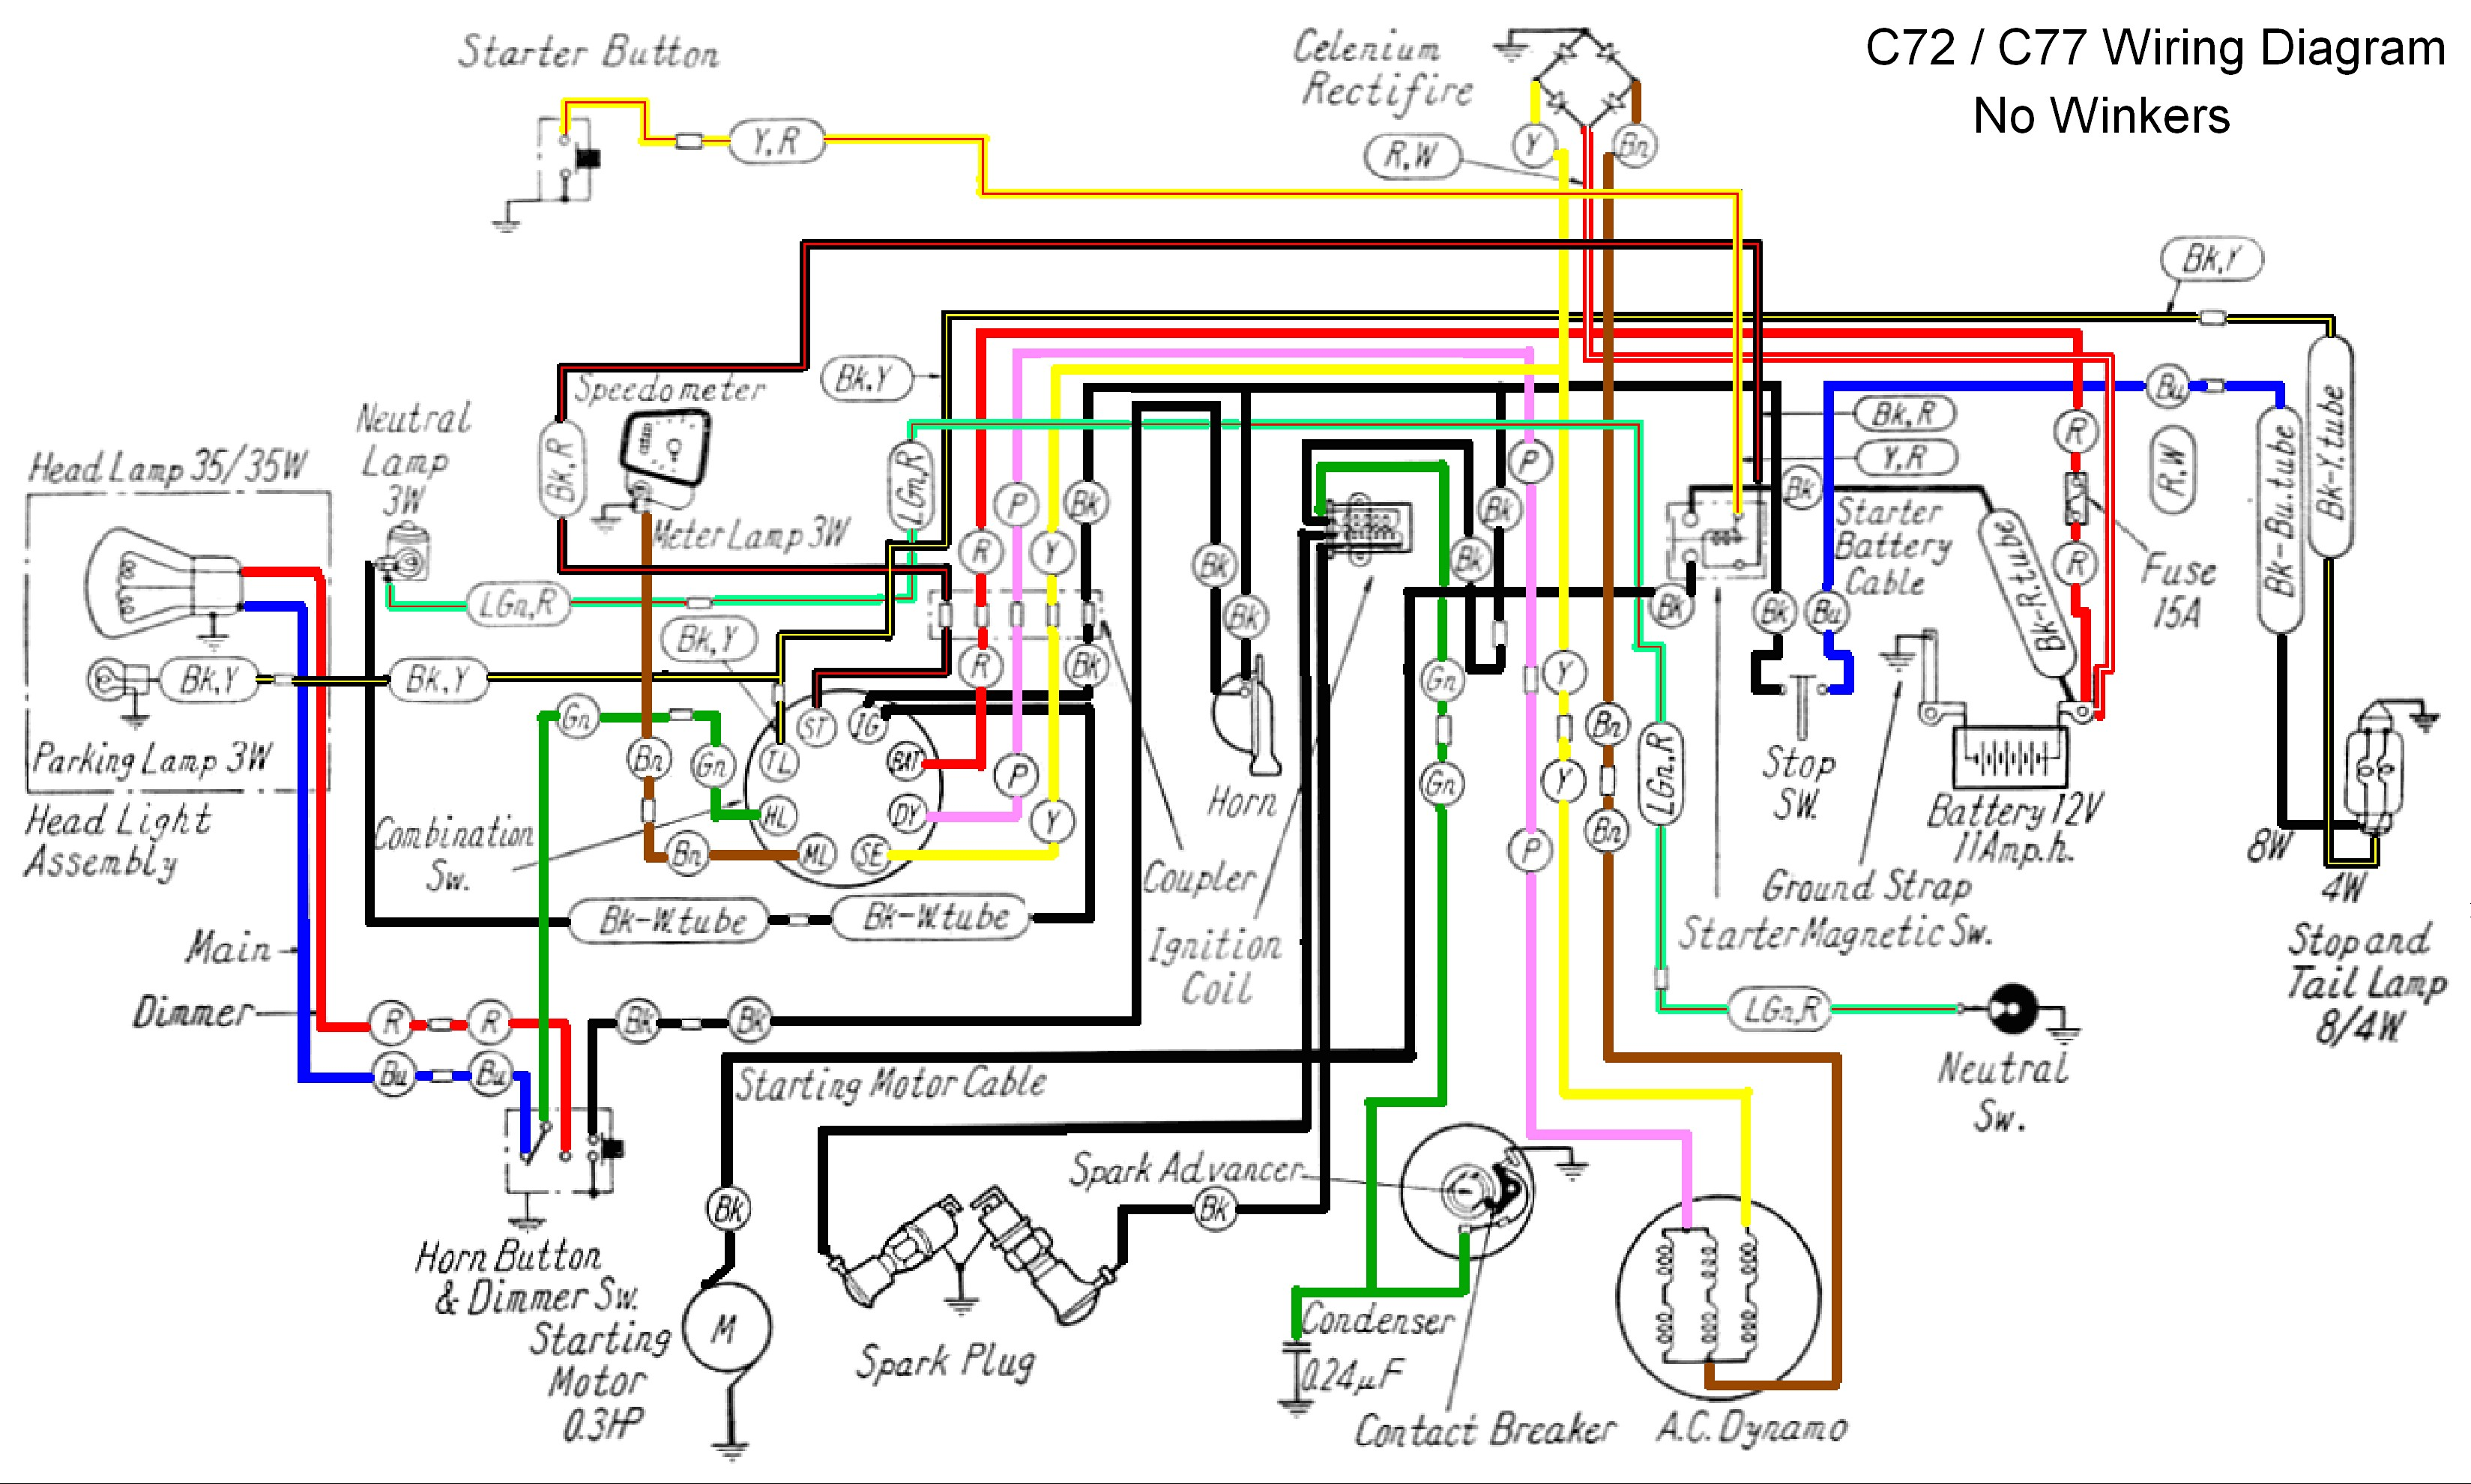 R6 Wiring Diagram Honda 150 Site Ch 80 Data 1980 Ct70 Cb750 Simple